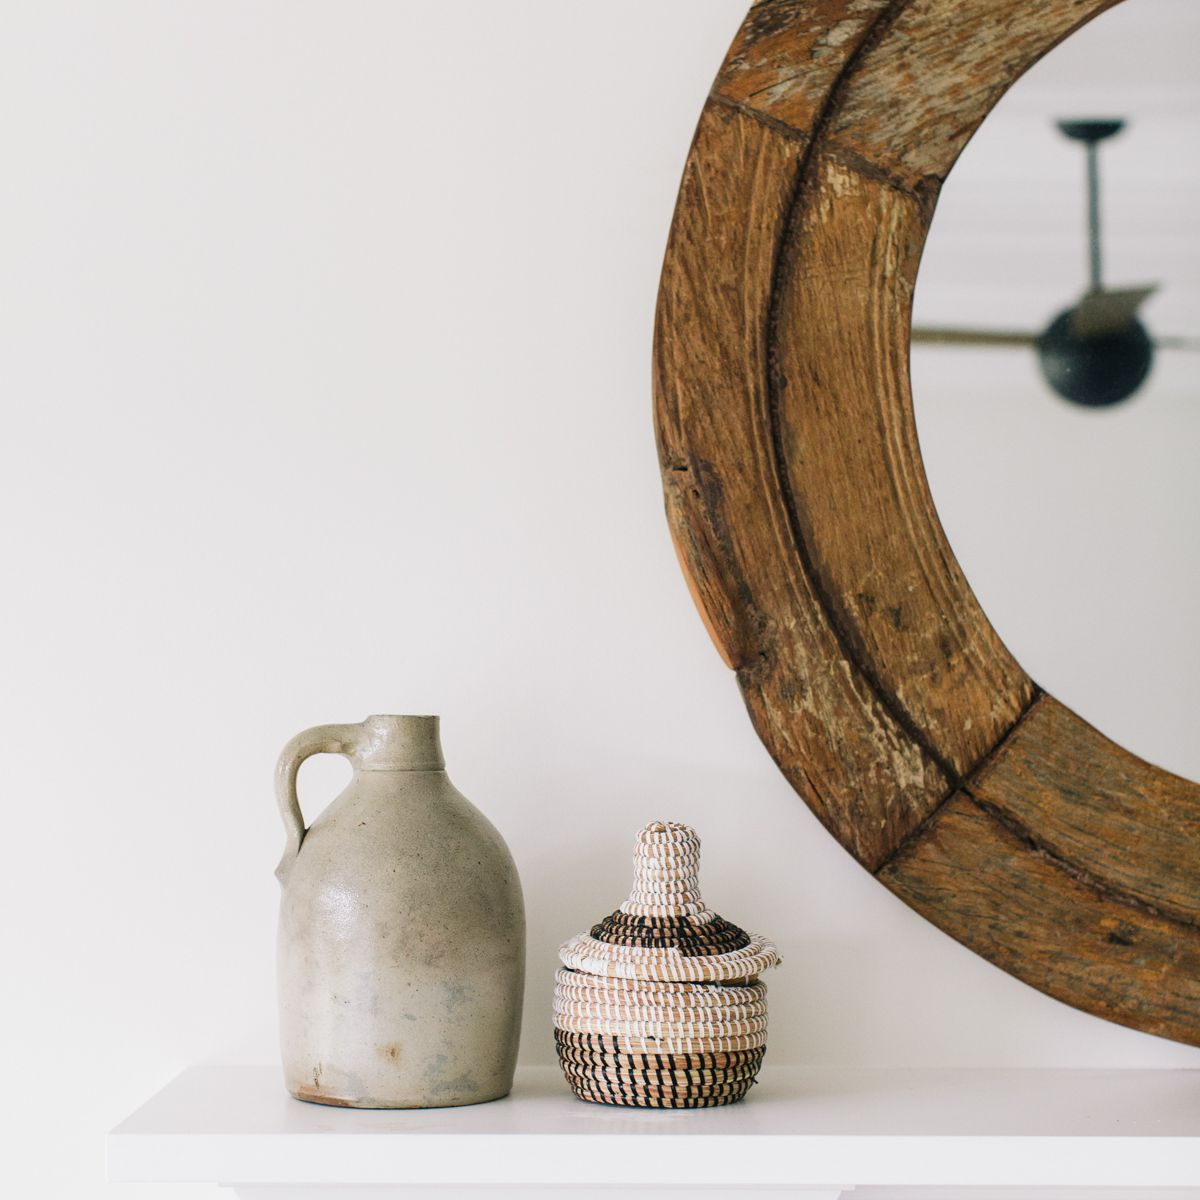 how to decorate with sage - bring in vintage pieces